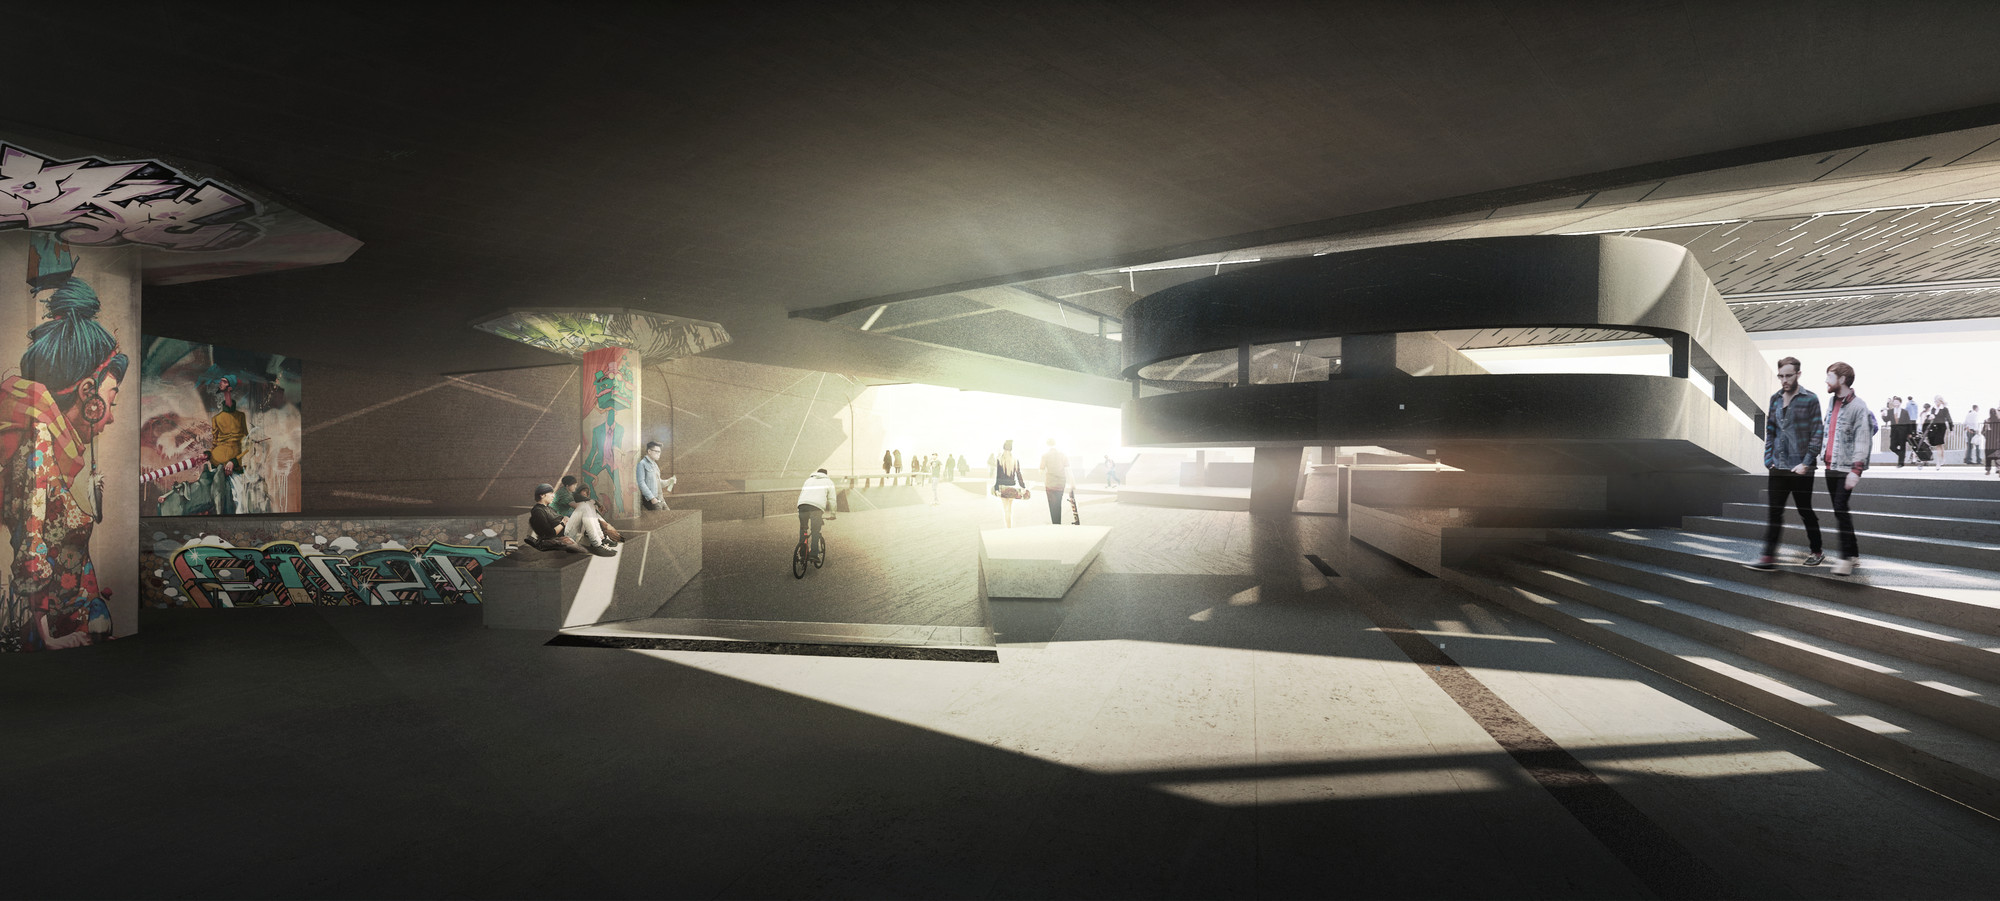 Design option for new skateable space at Southbank Centre by 42 Architects. Image Courtesy of The Southbank Centre